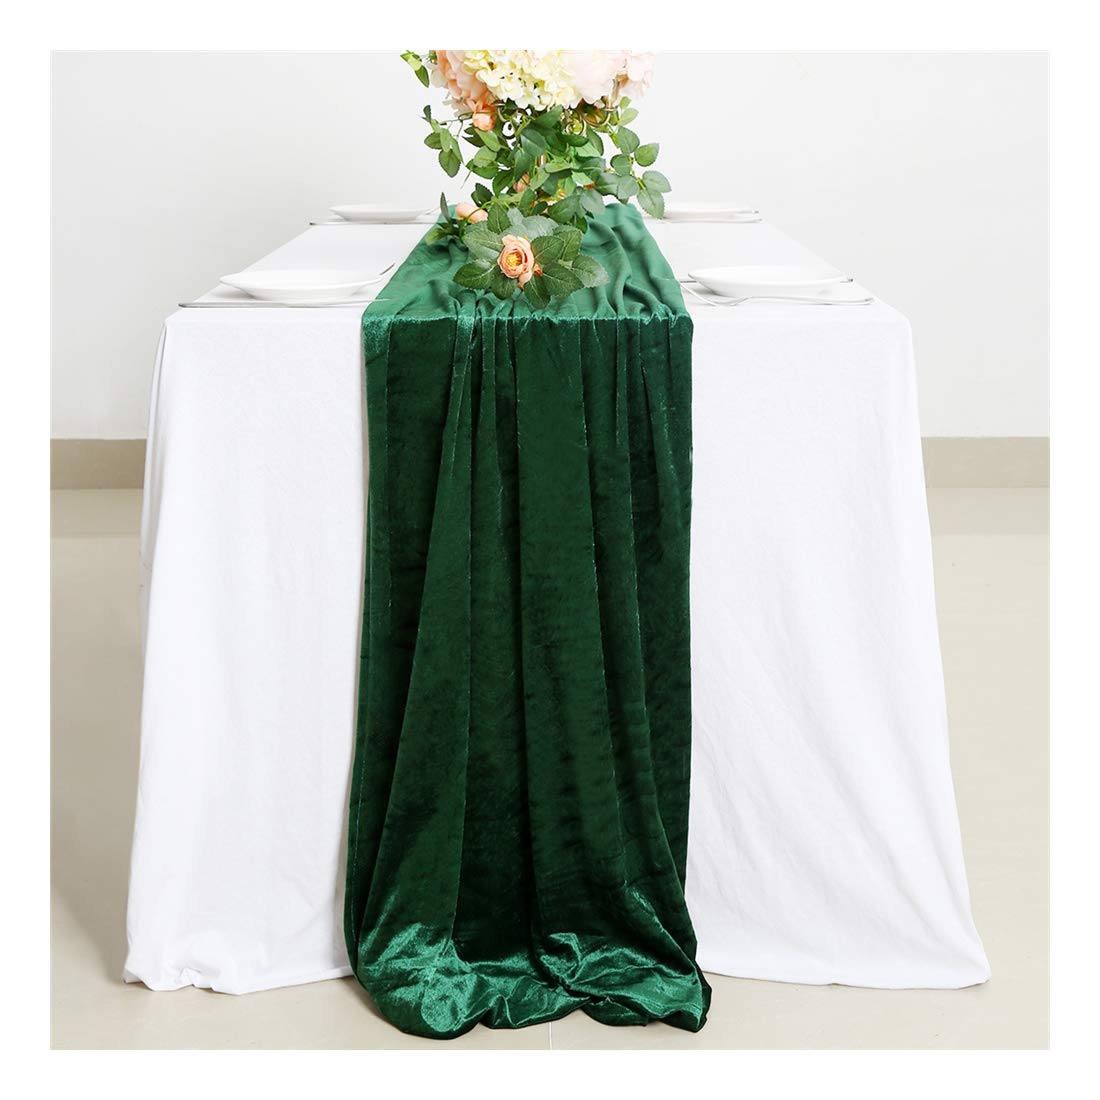 Table Runners Velvet Cotton Table Runner Emerald Velvet Aisle Runner Wedding Table Runner Green Birthday Bachelor Party Holiday Party Event Supplies